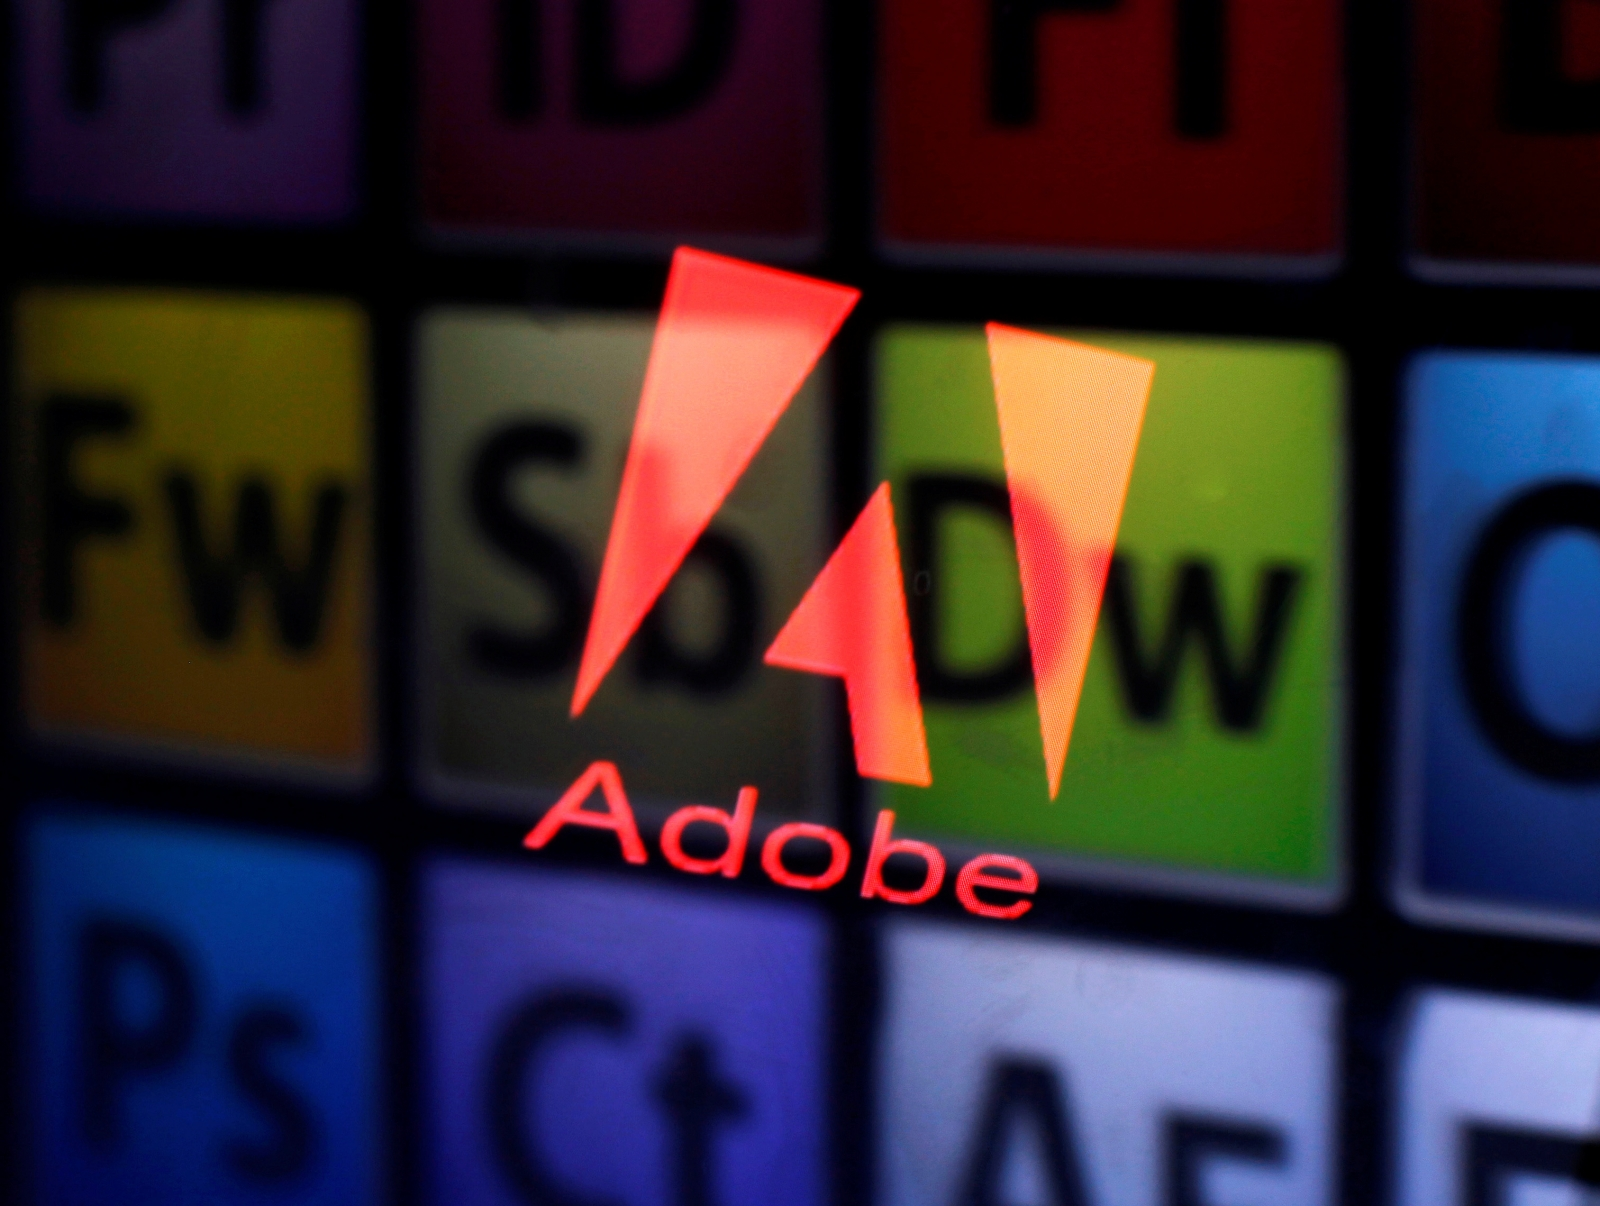 Adobe fined $1m for 2013 security breach